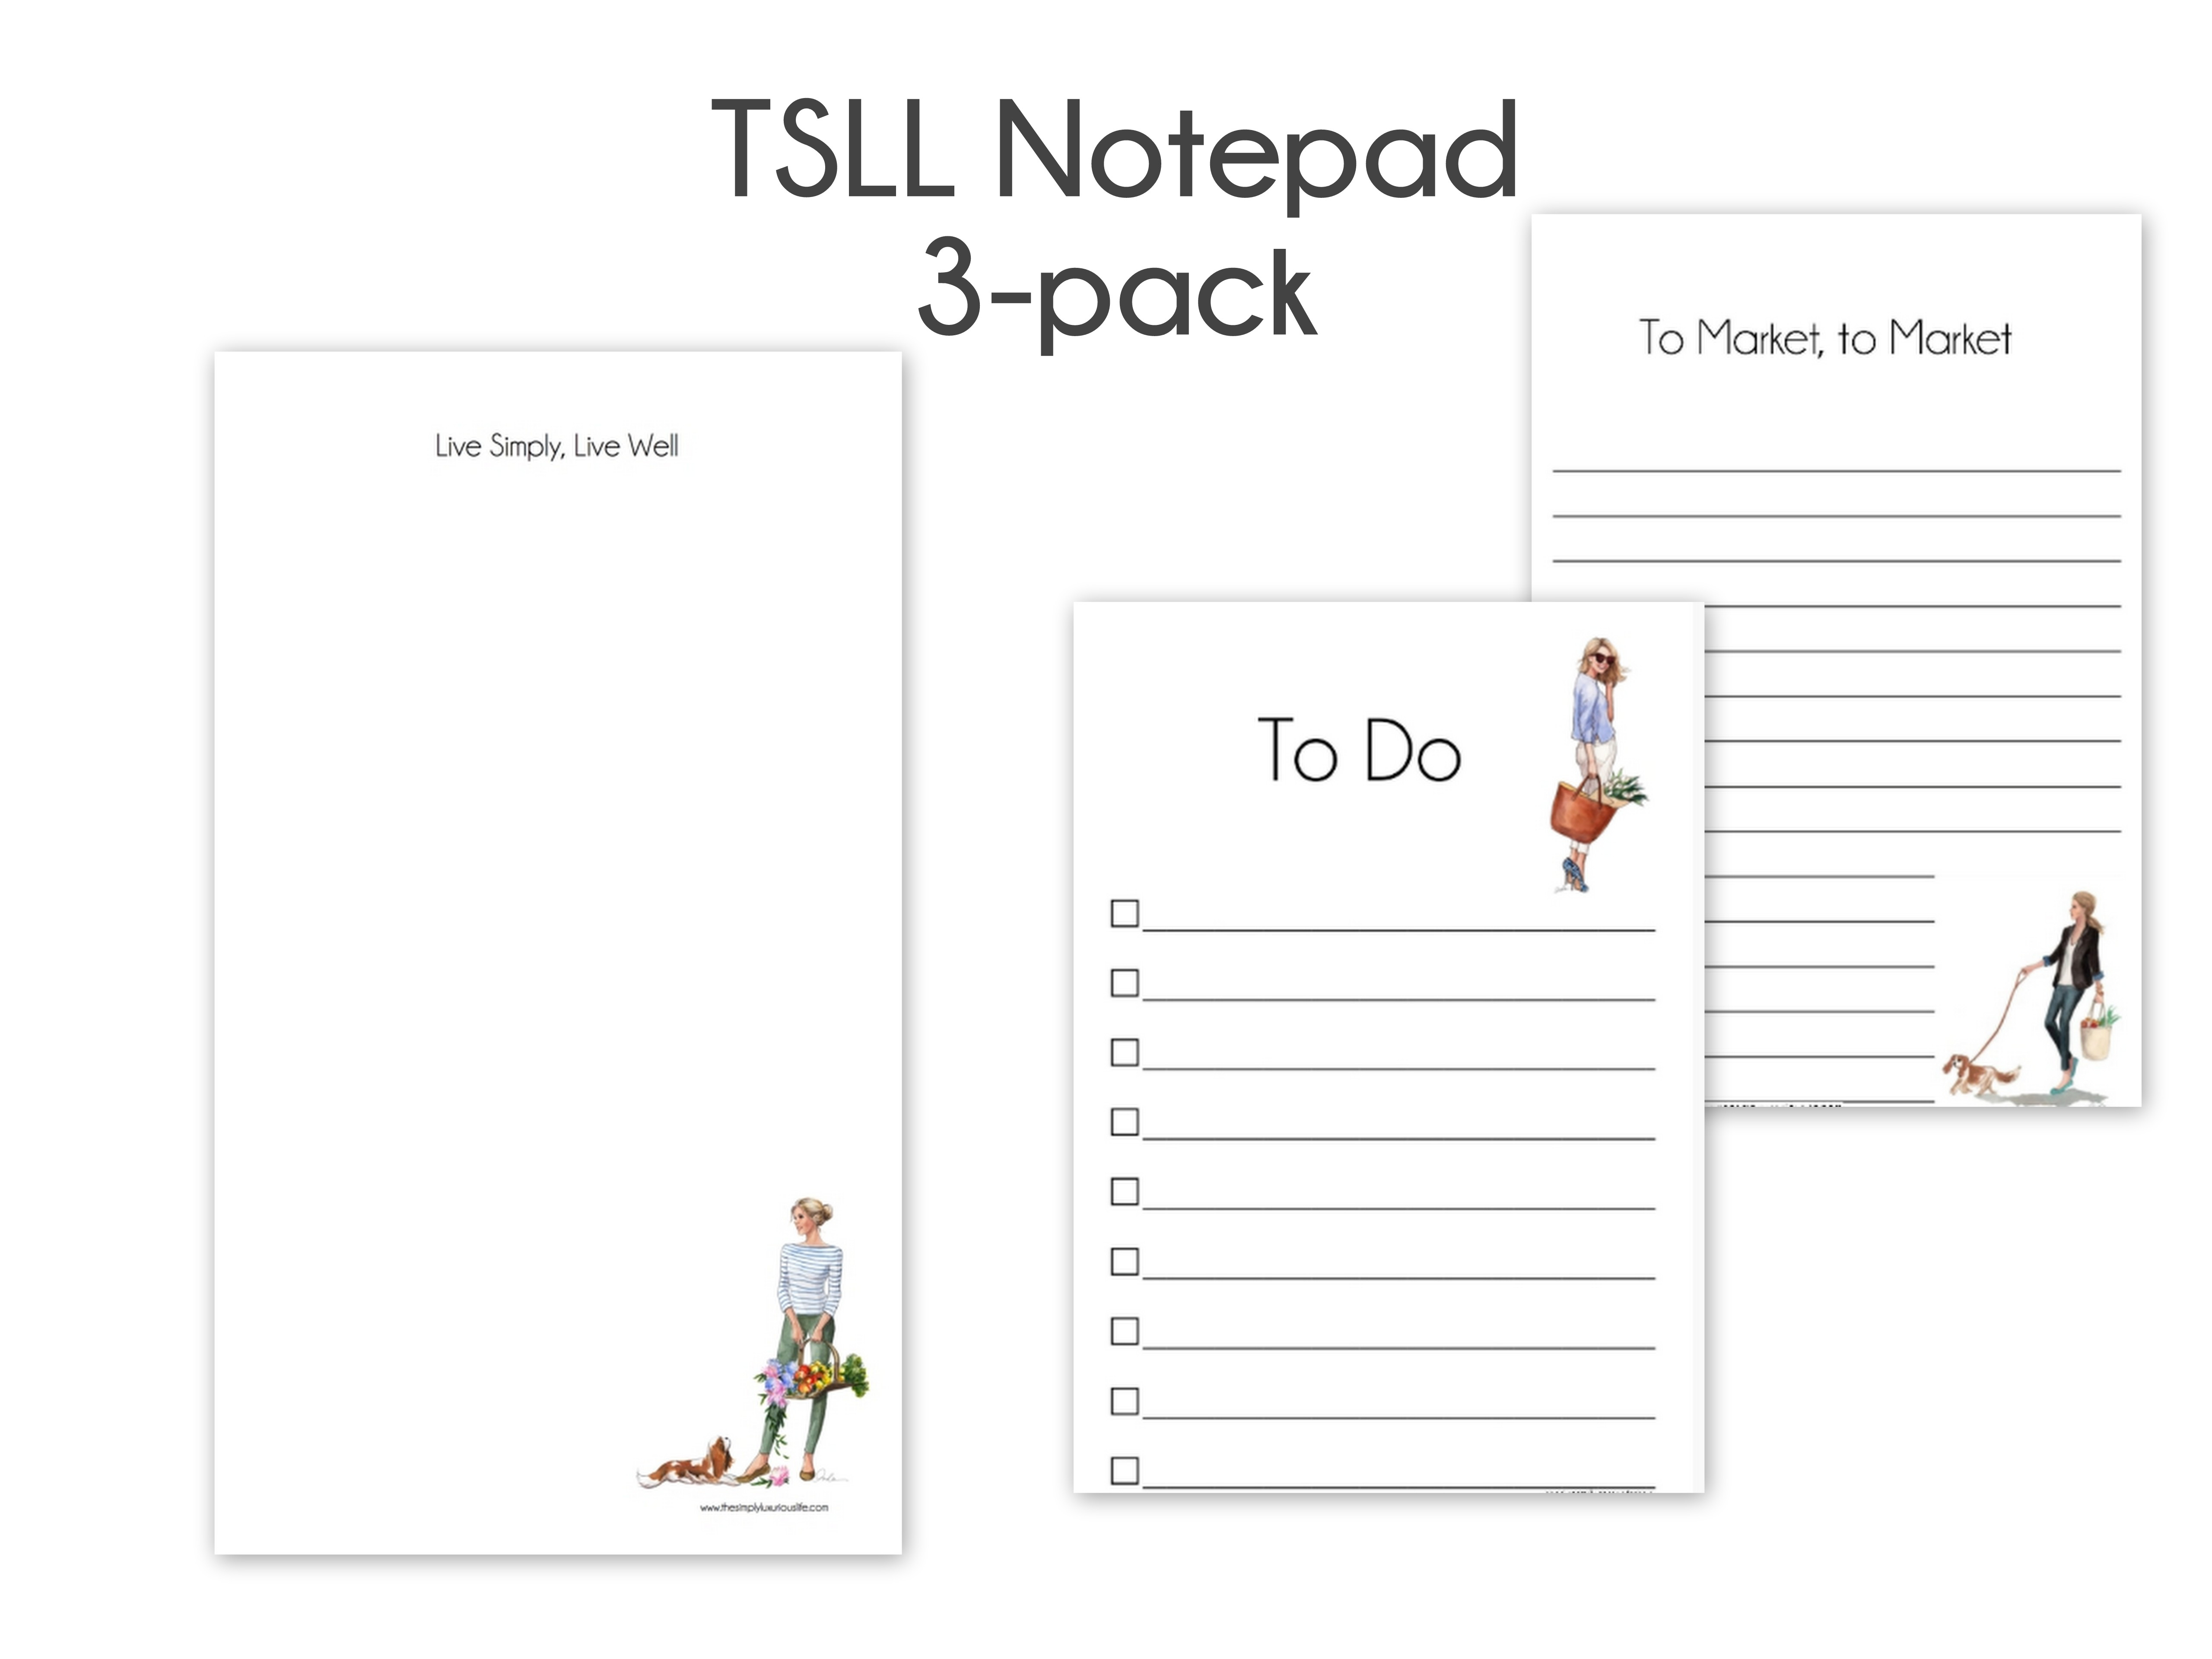 3packnotepads